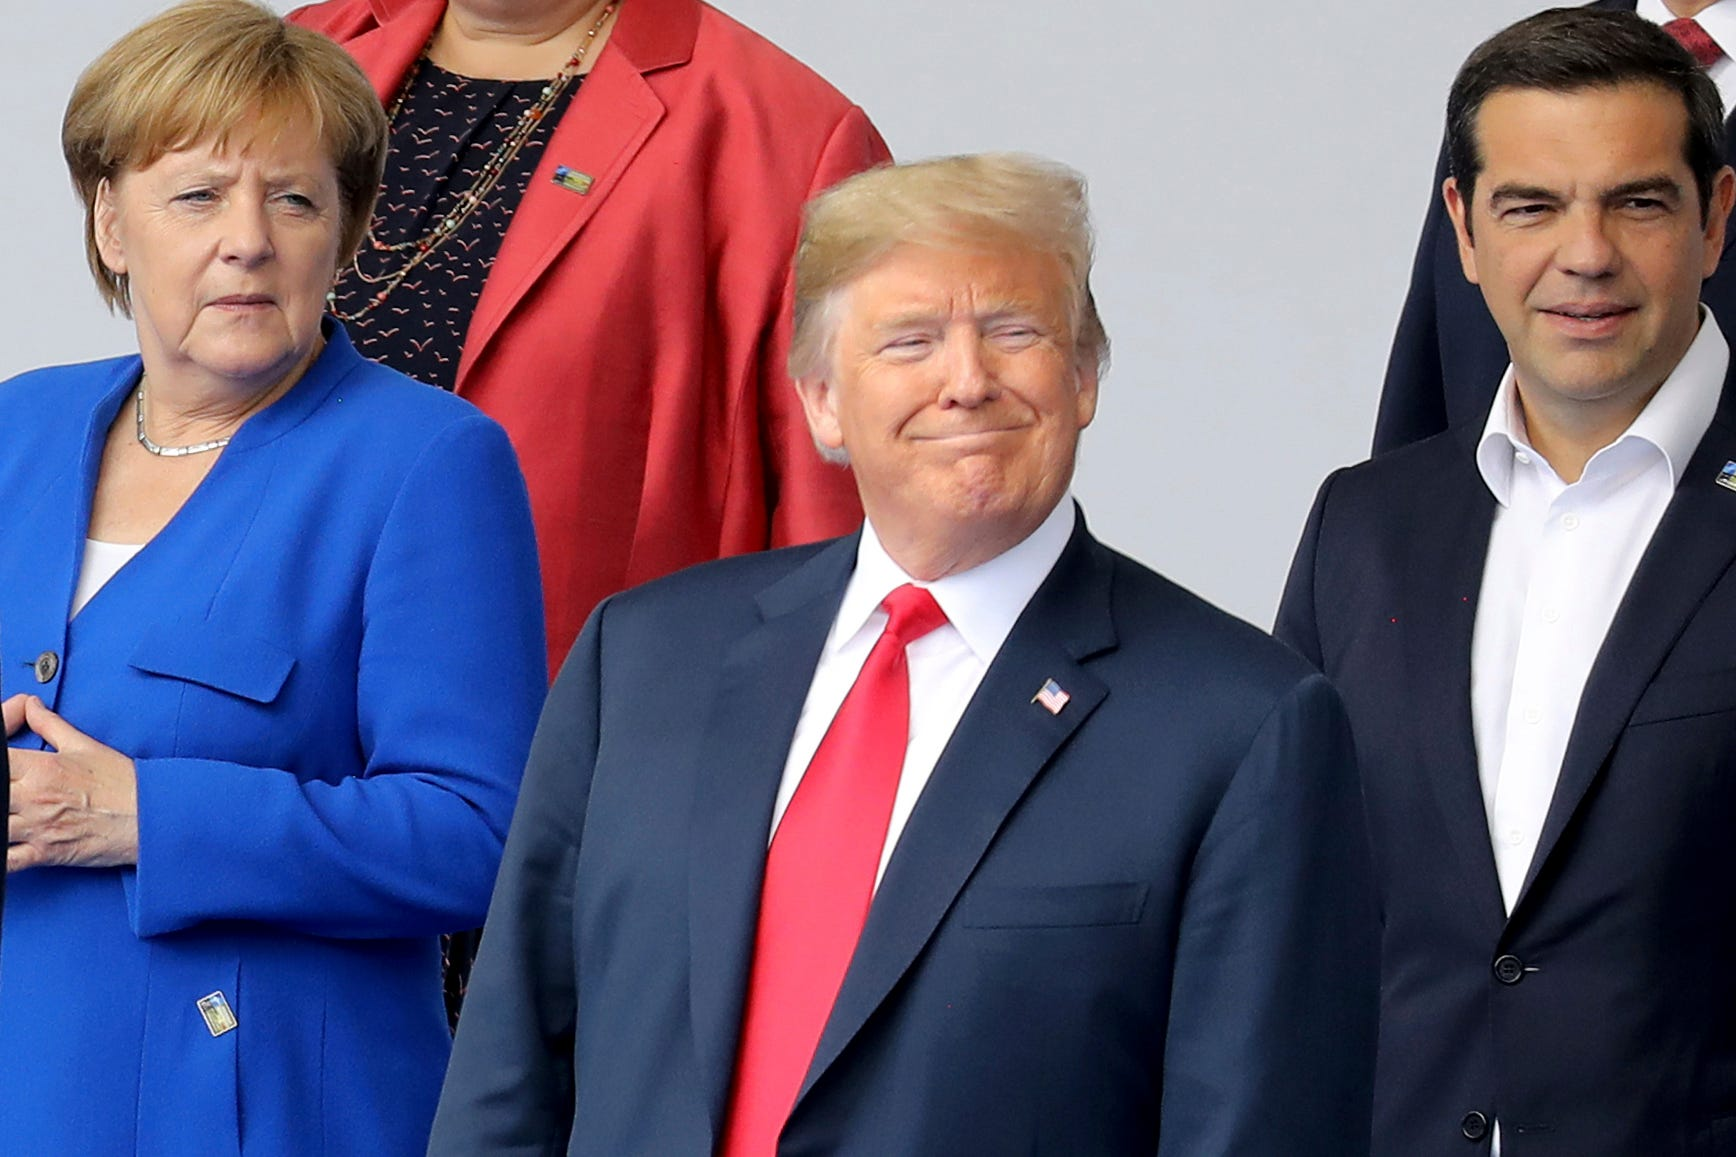 Trump says US won't pull out of NATO after receiving commitments from allies